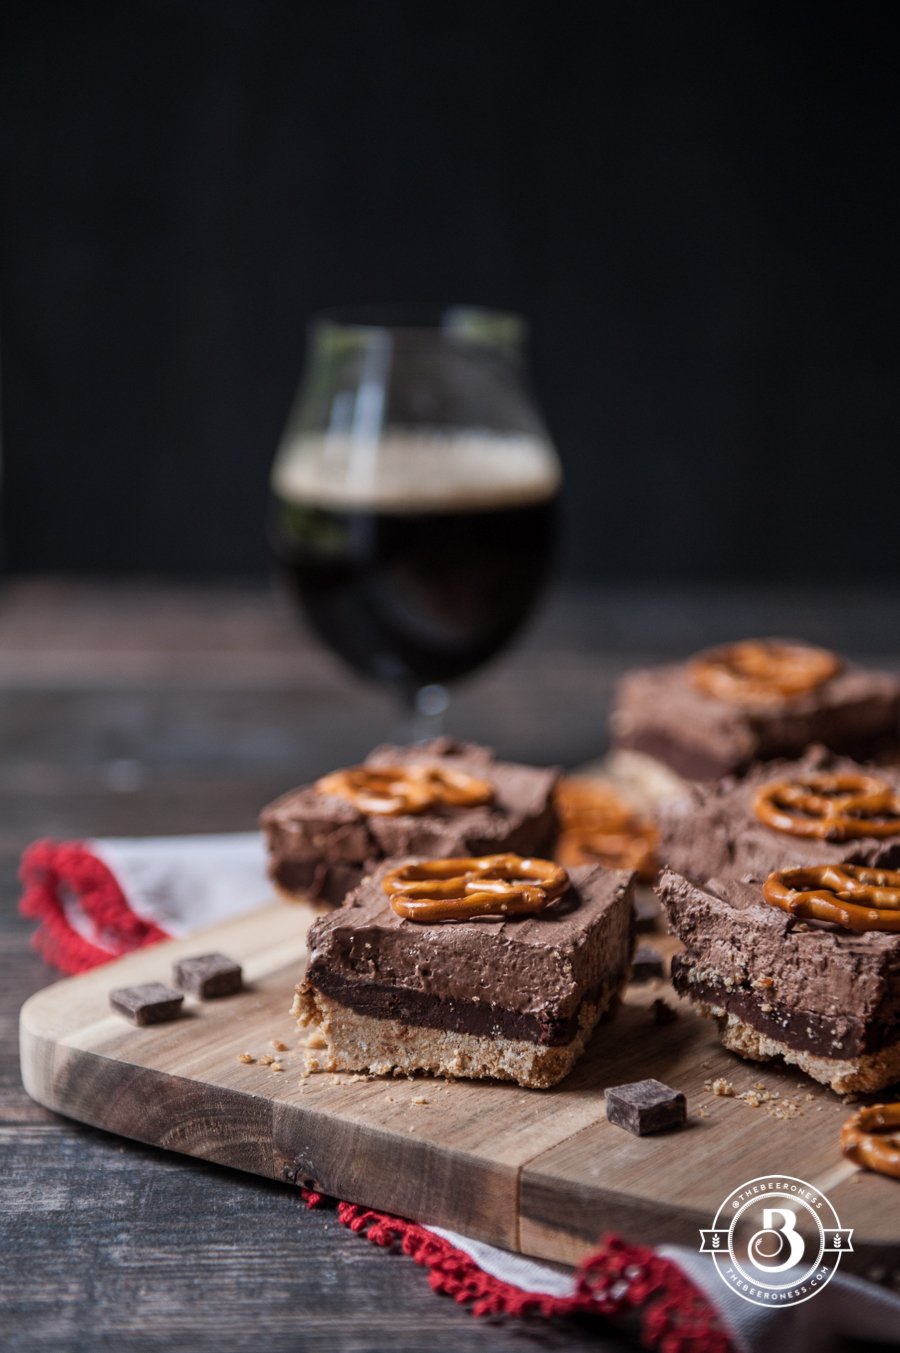 Chocolate Stout Truffle Mousse Bars with Pretzel Crust2